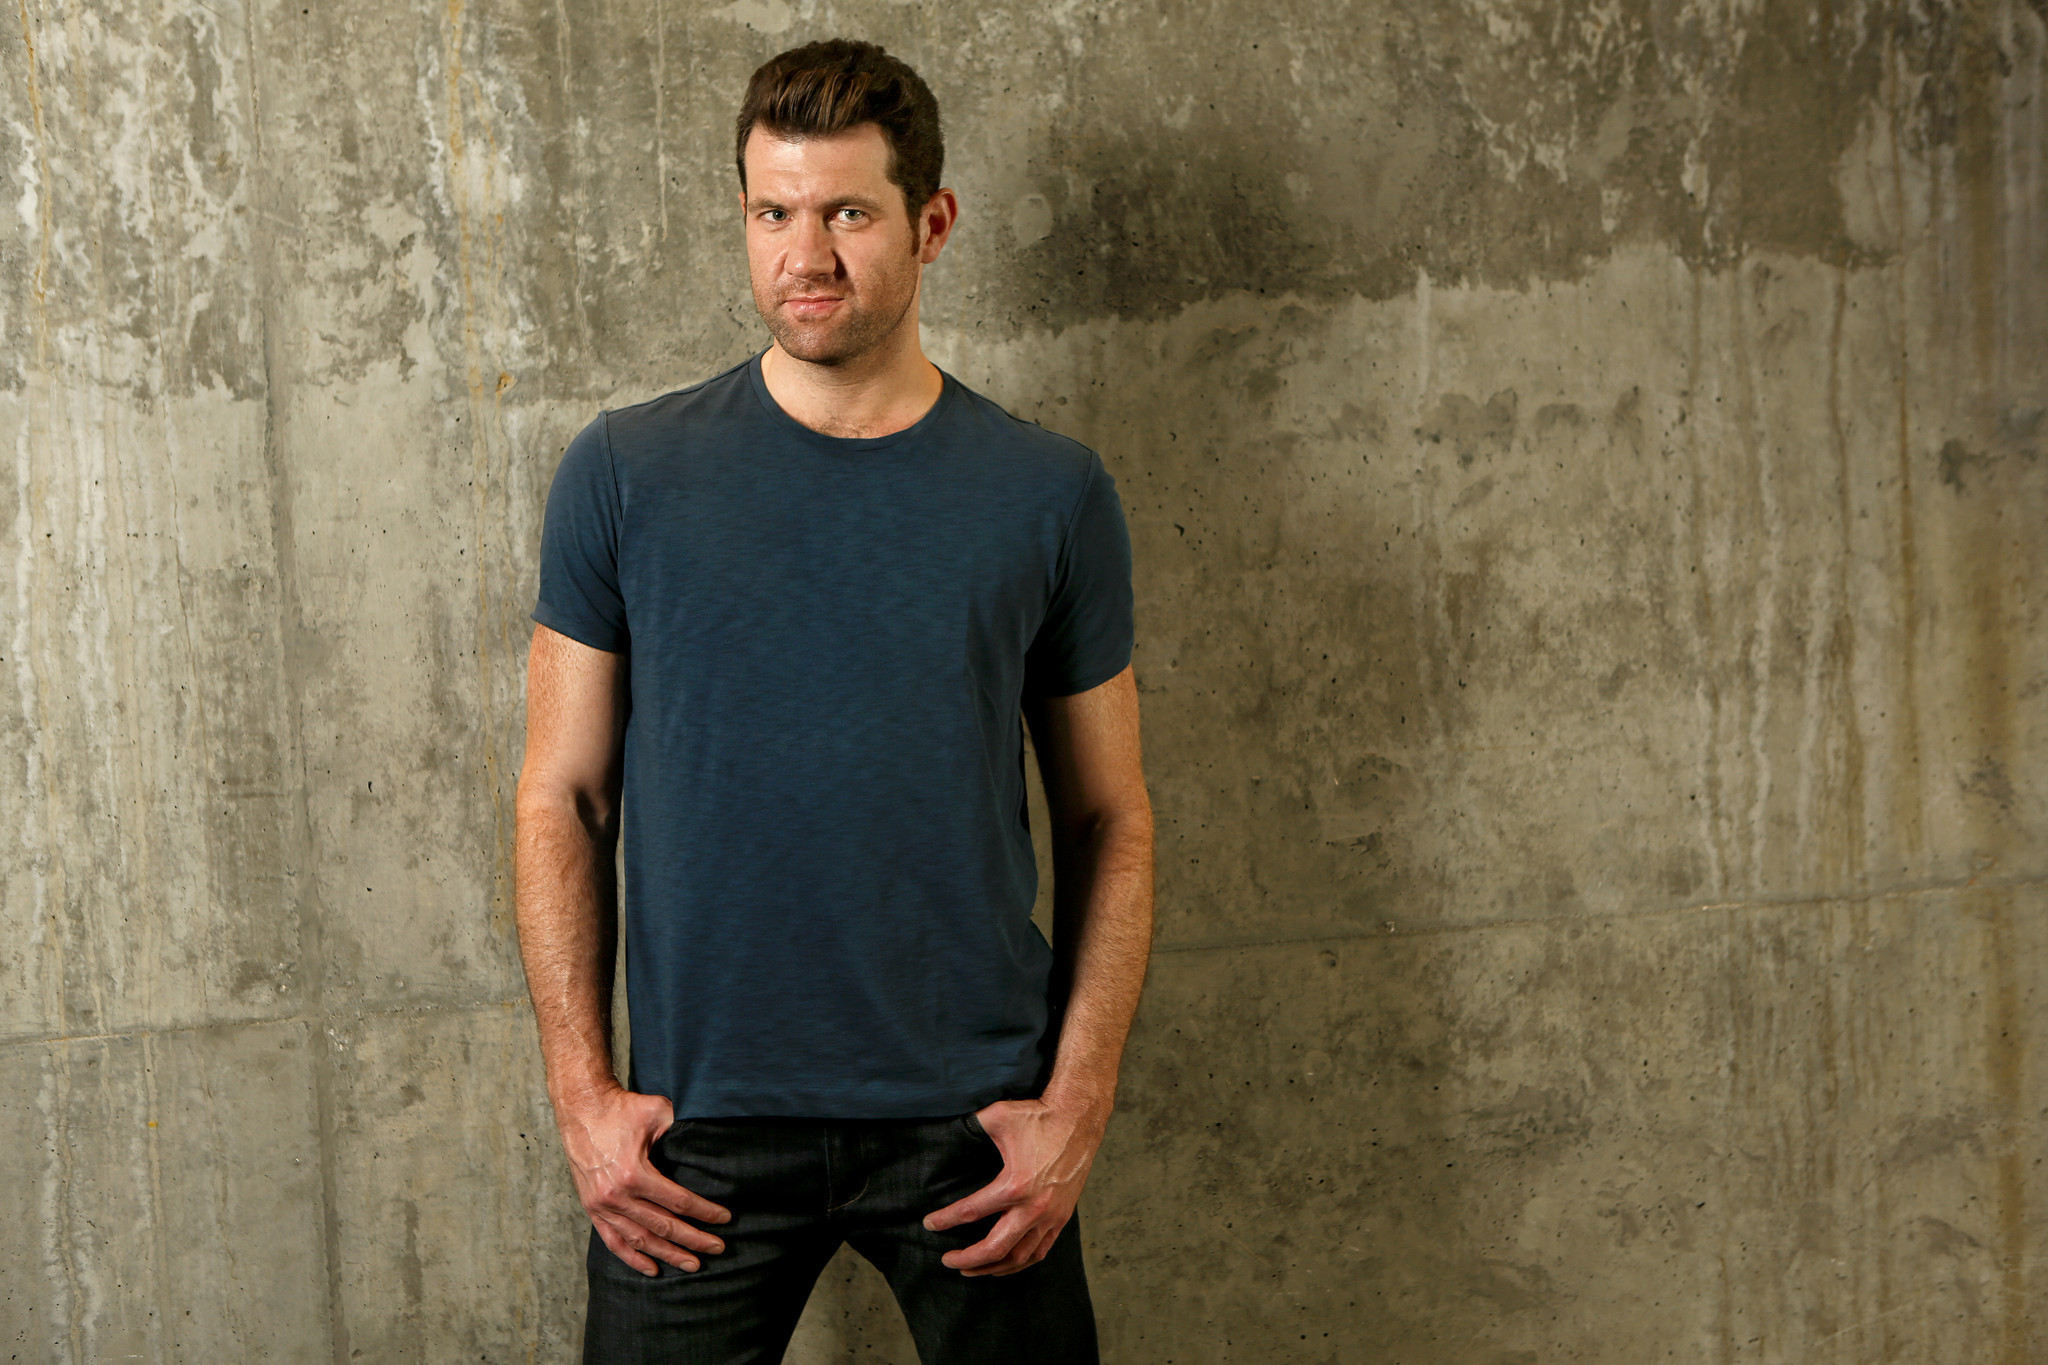 On His Show Billy Eichner Claims His Former Northwestern